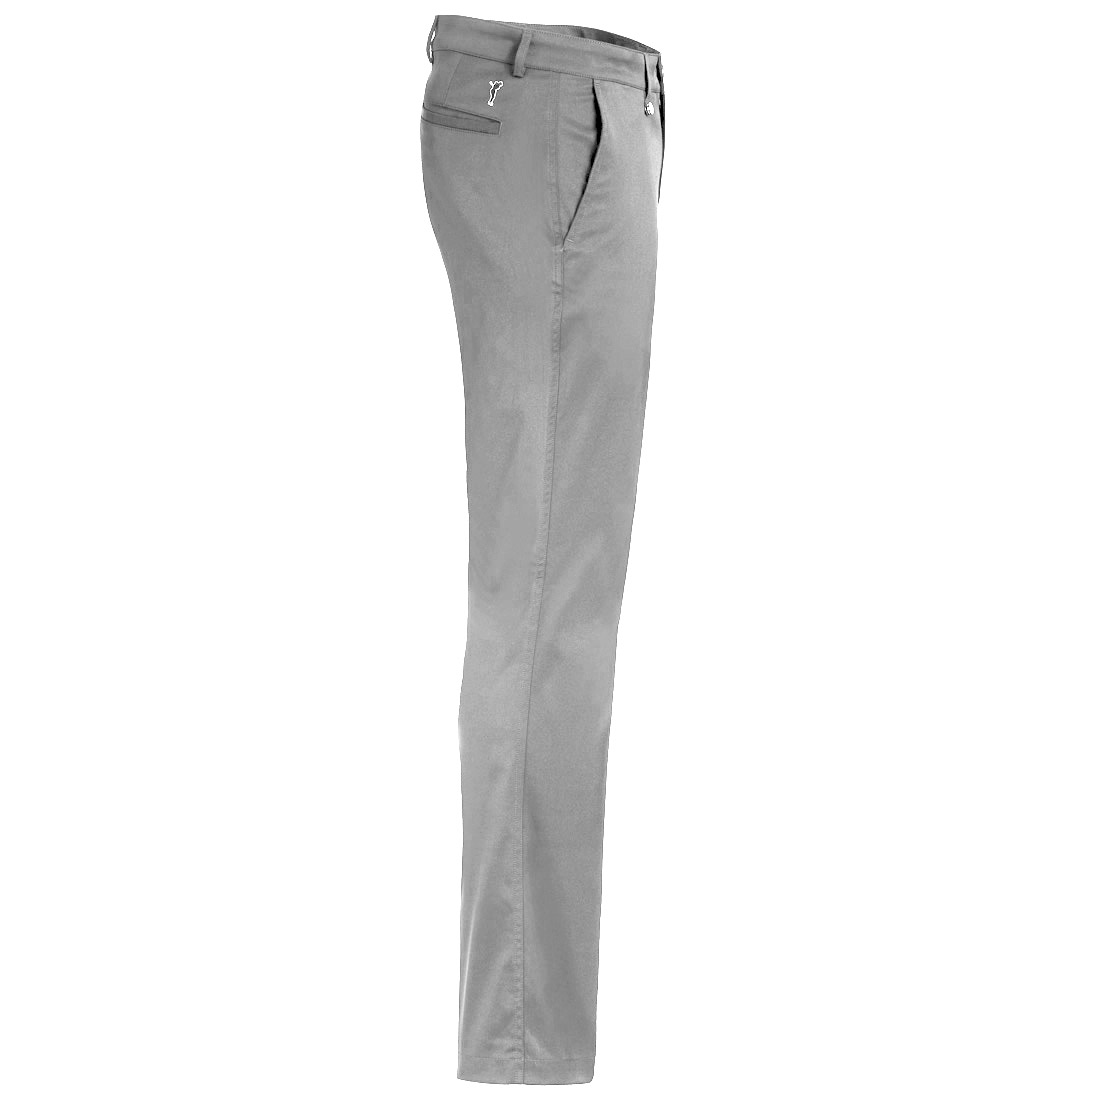 Leichte Herren Techno Stretch Hose